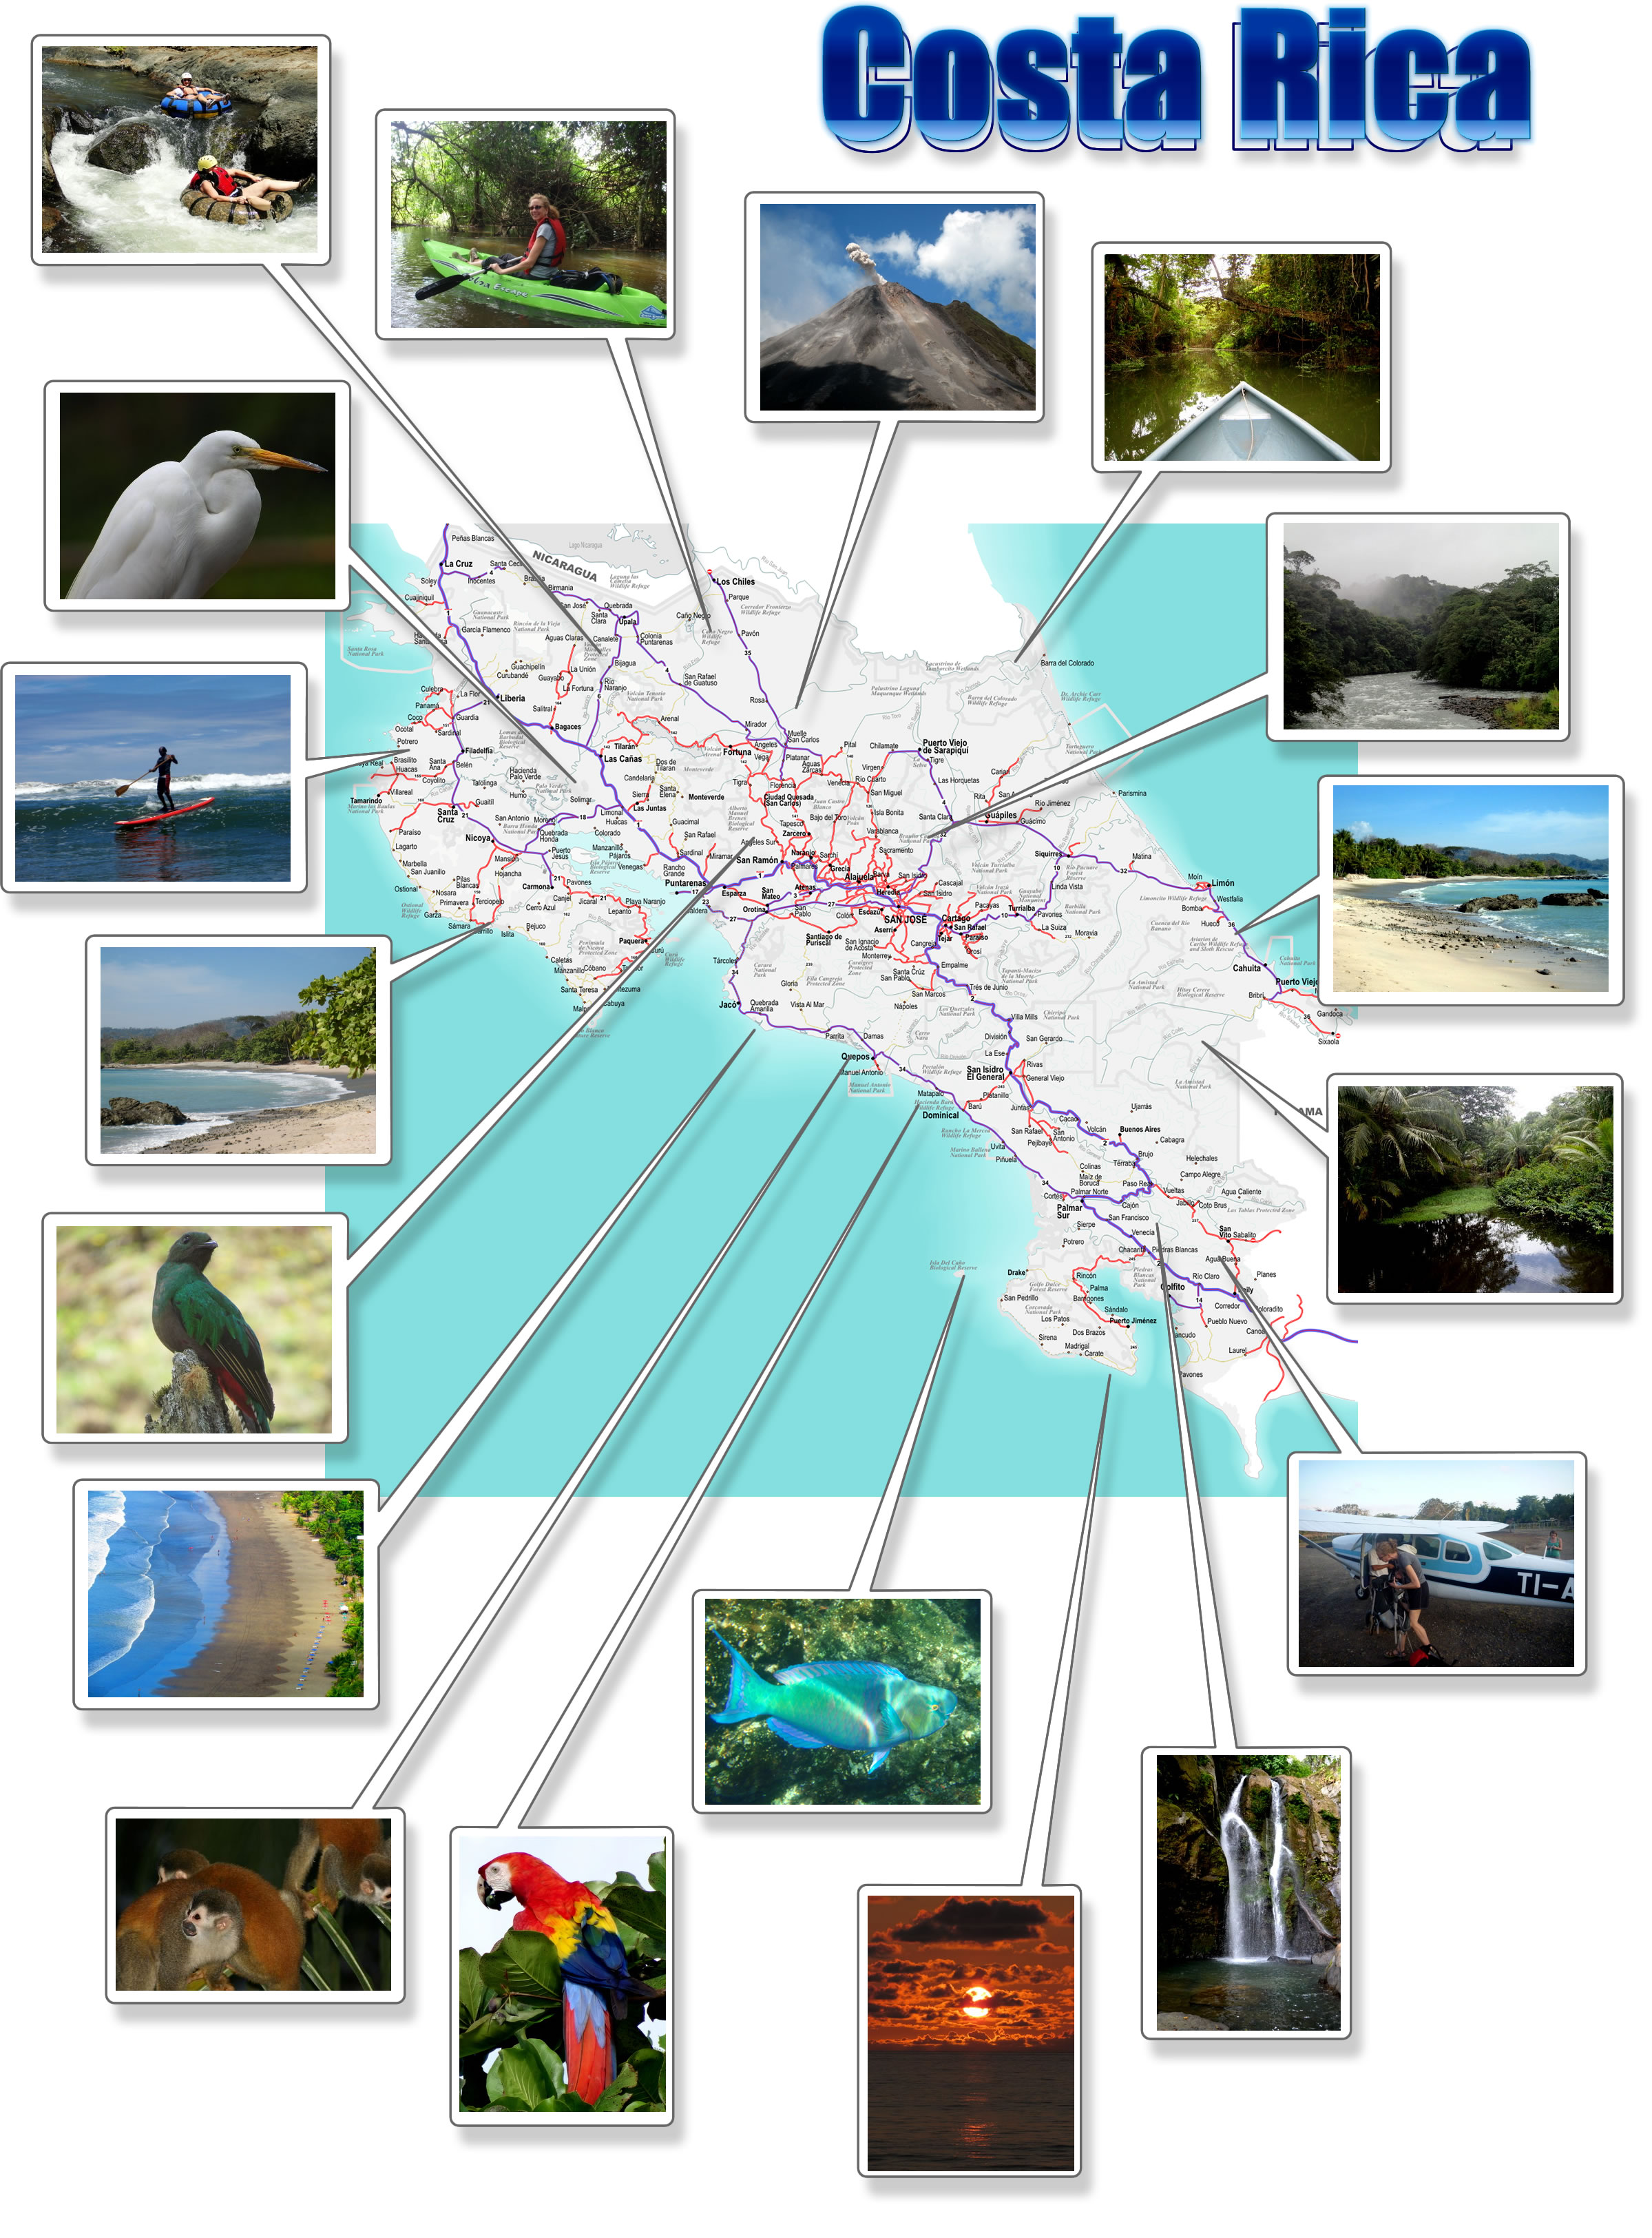 Costa Rica Free Printable Map Download - Map of costa rica